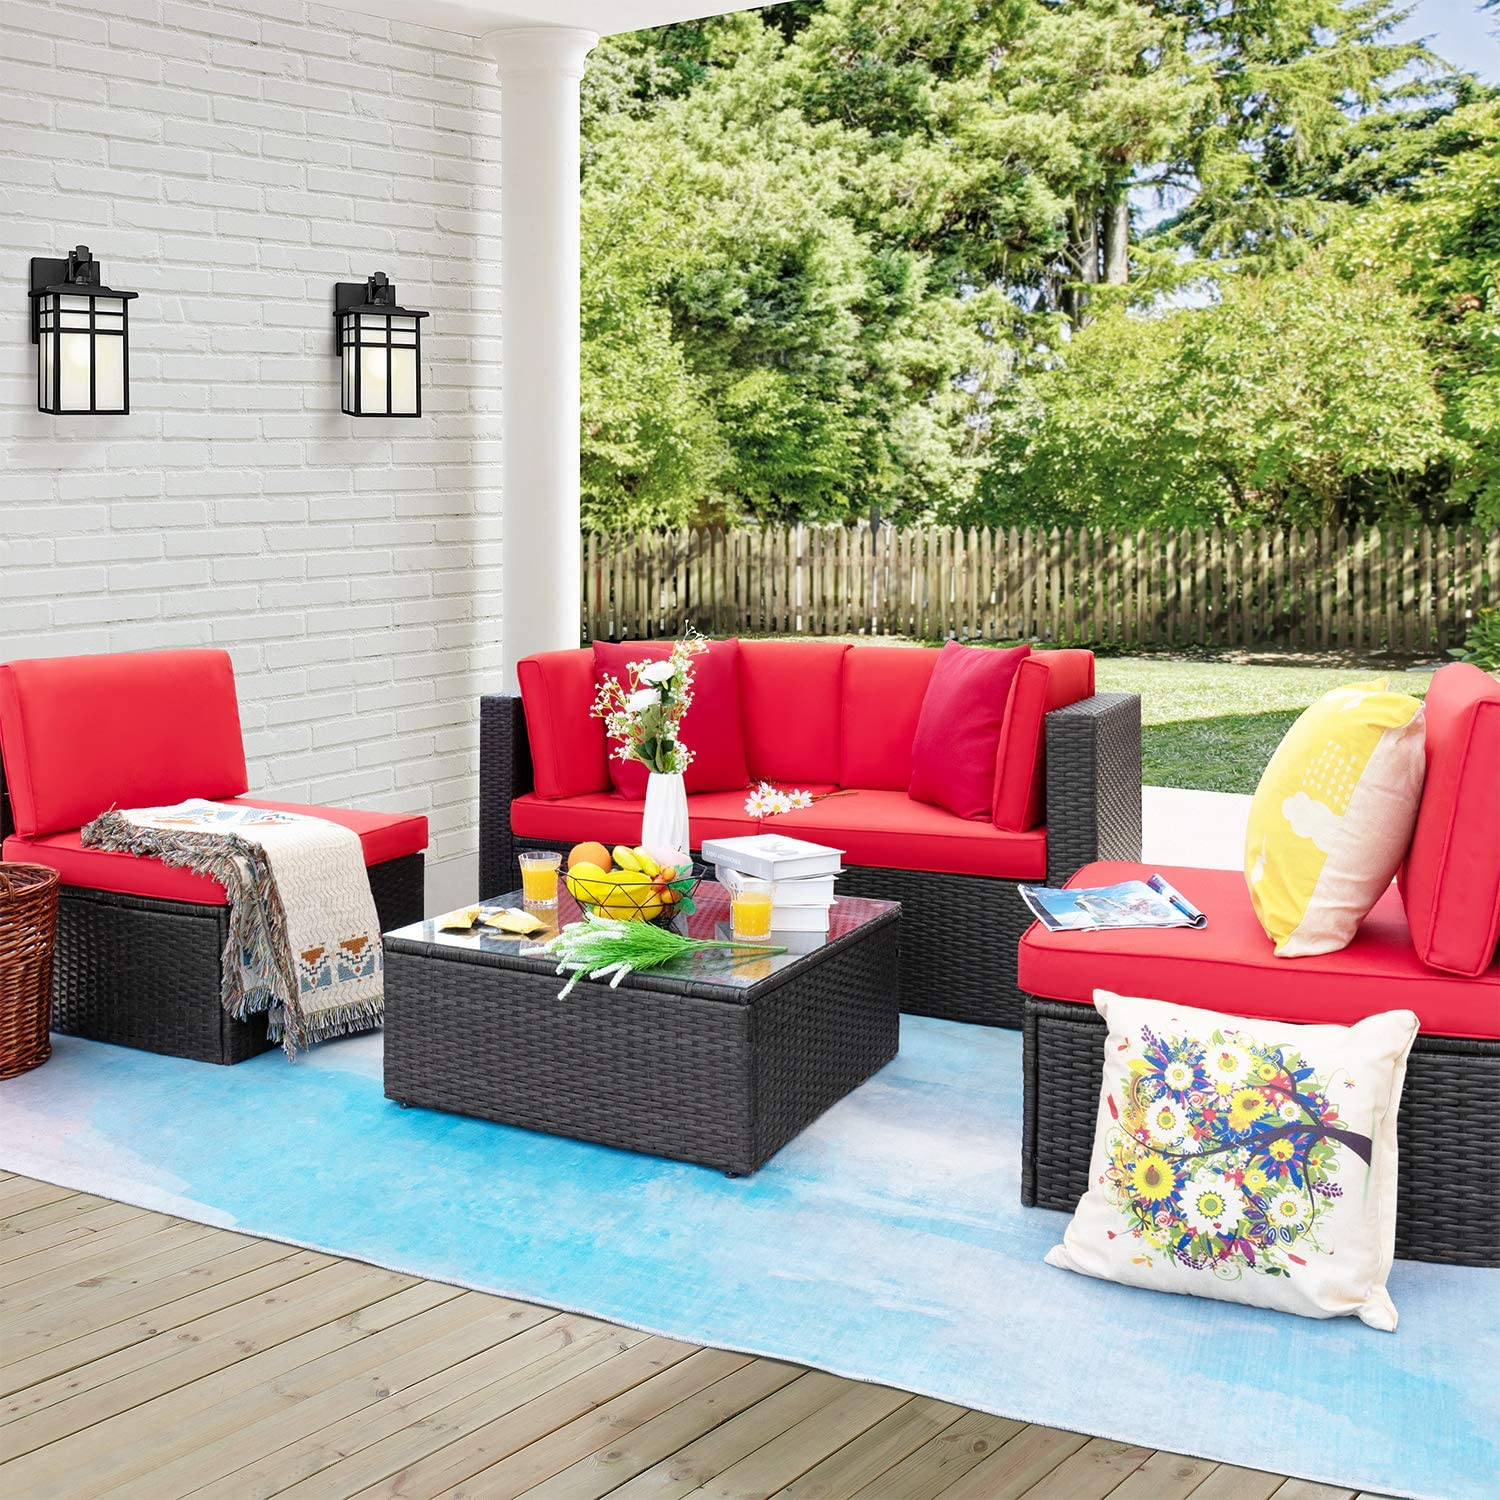 Furniwell 5 Pieces Patio Furniture Sectional Set Outdoor Wicker Rattan Sofa Set Backyard Couch Conversation Sets with Pillow Cushions and Glass Table (Red)